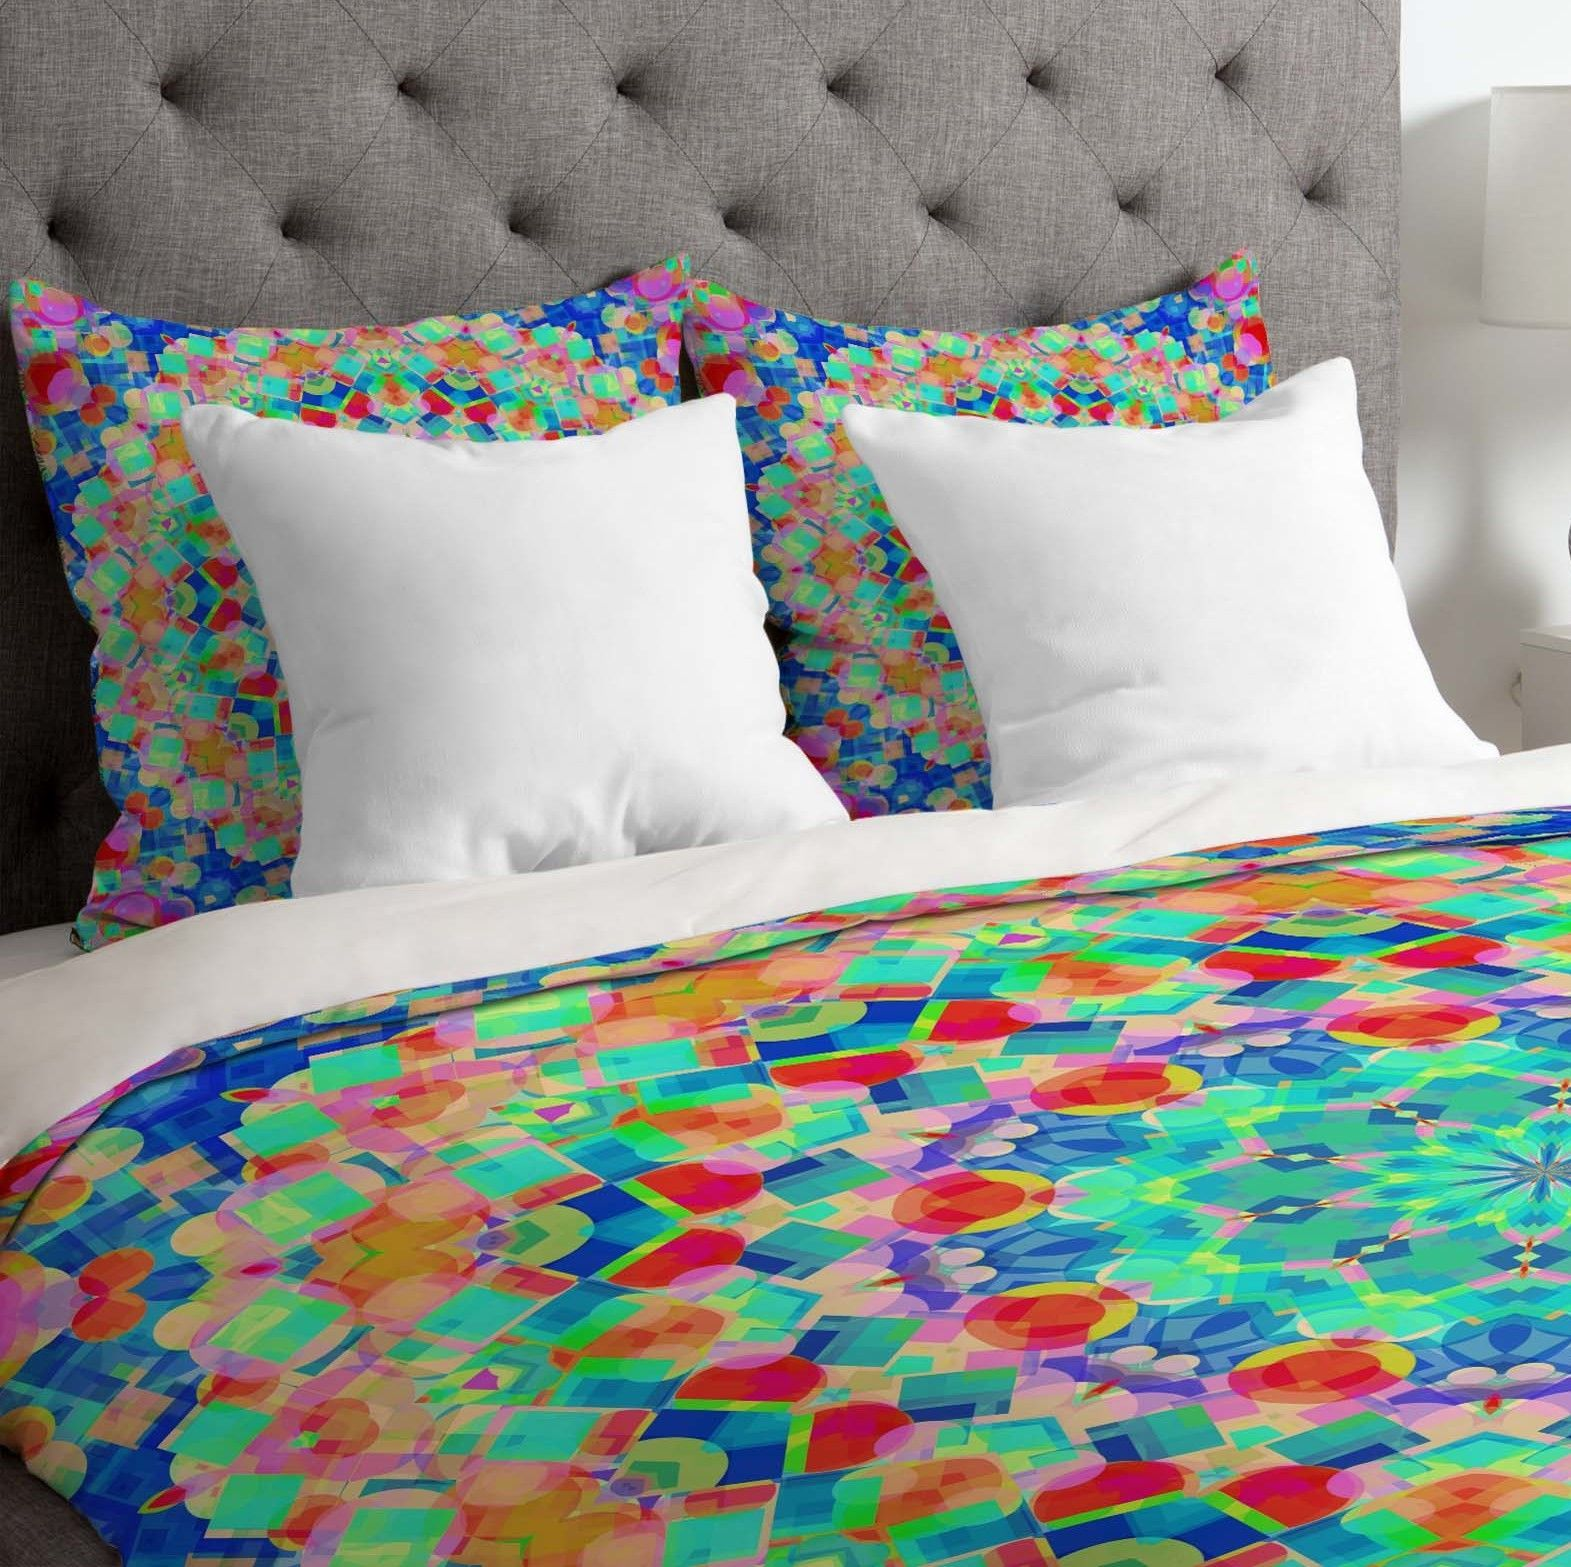 Brito Geometria Lightweight Duvet Cover Lightweight Duvet Covers Duvet Cover Sizes Duvet Covers